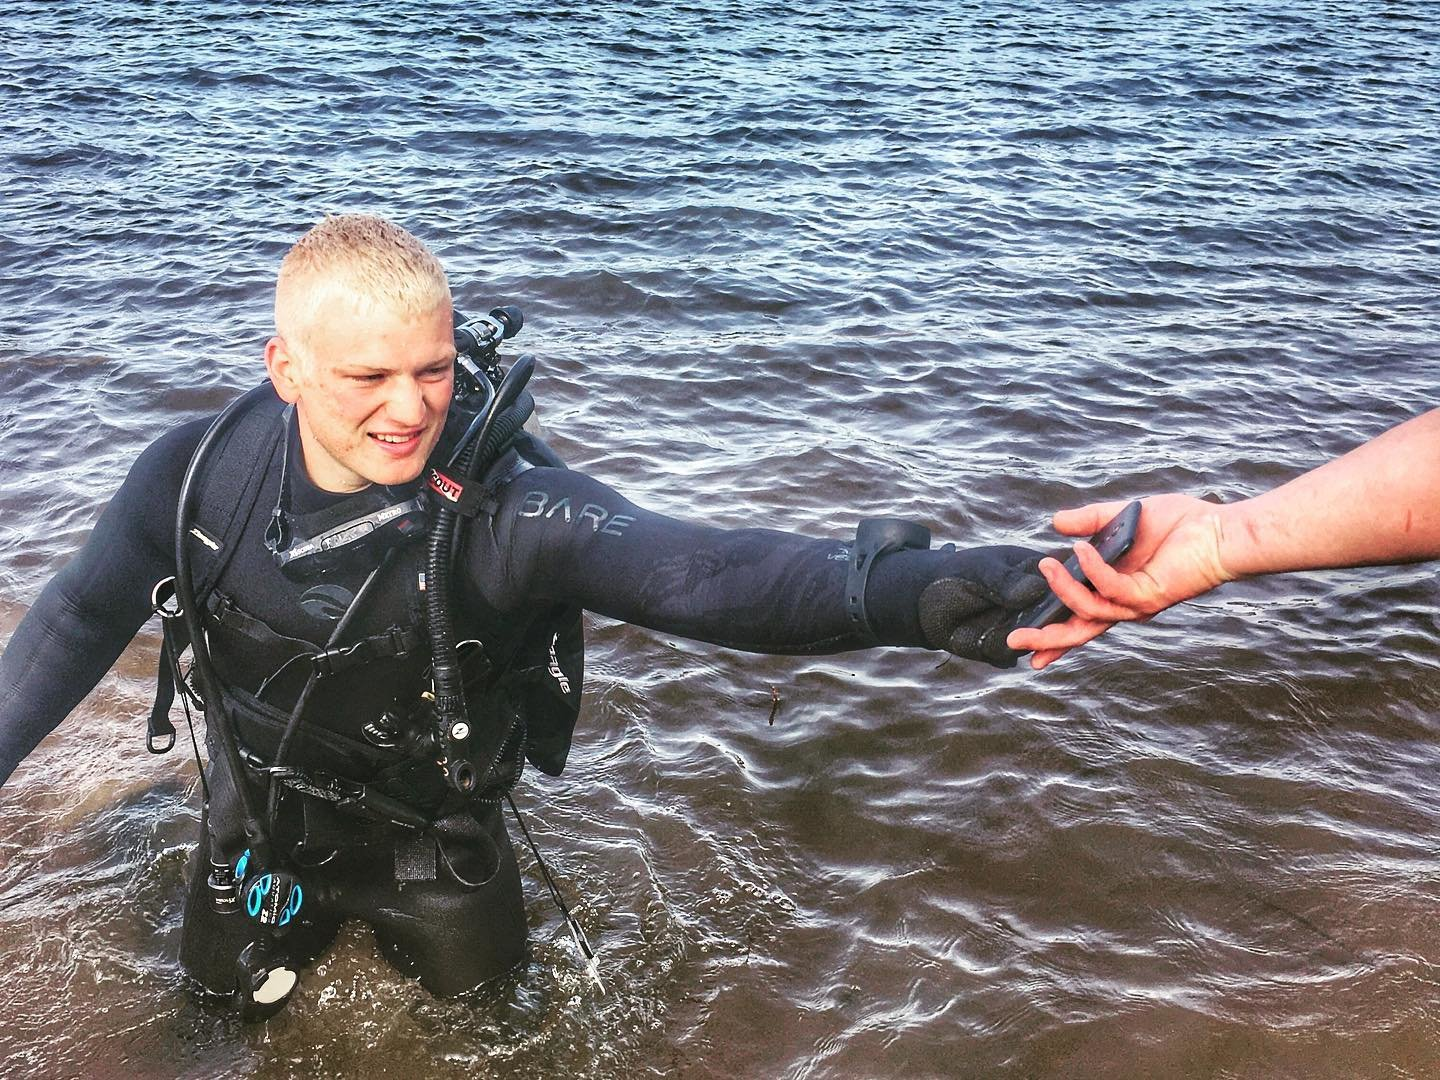 An International ALERT Academy dive team member retrieves a cell phone from Lake Quitman during the investigation of a drowning Monday.